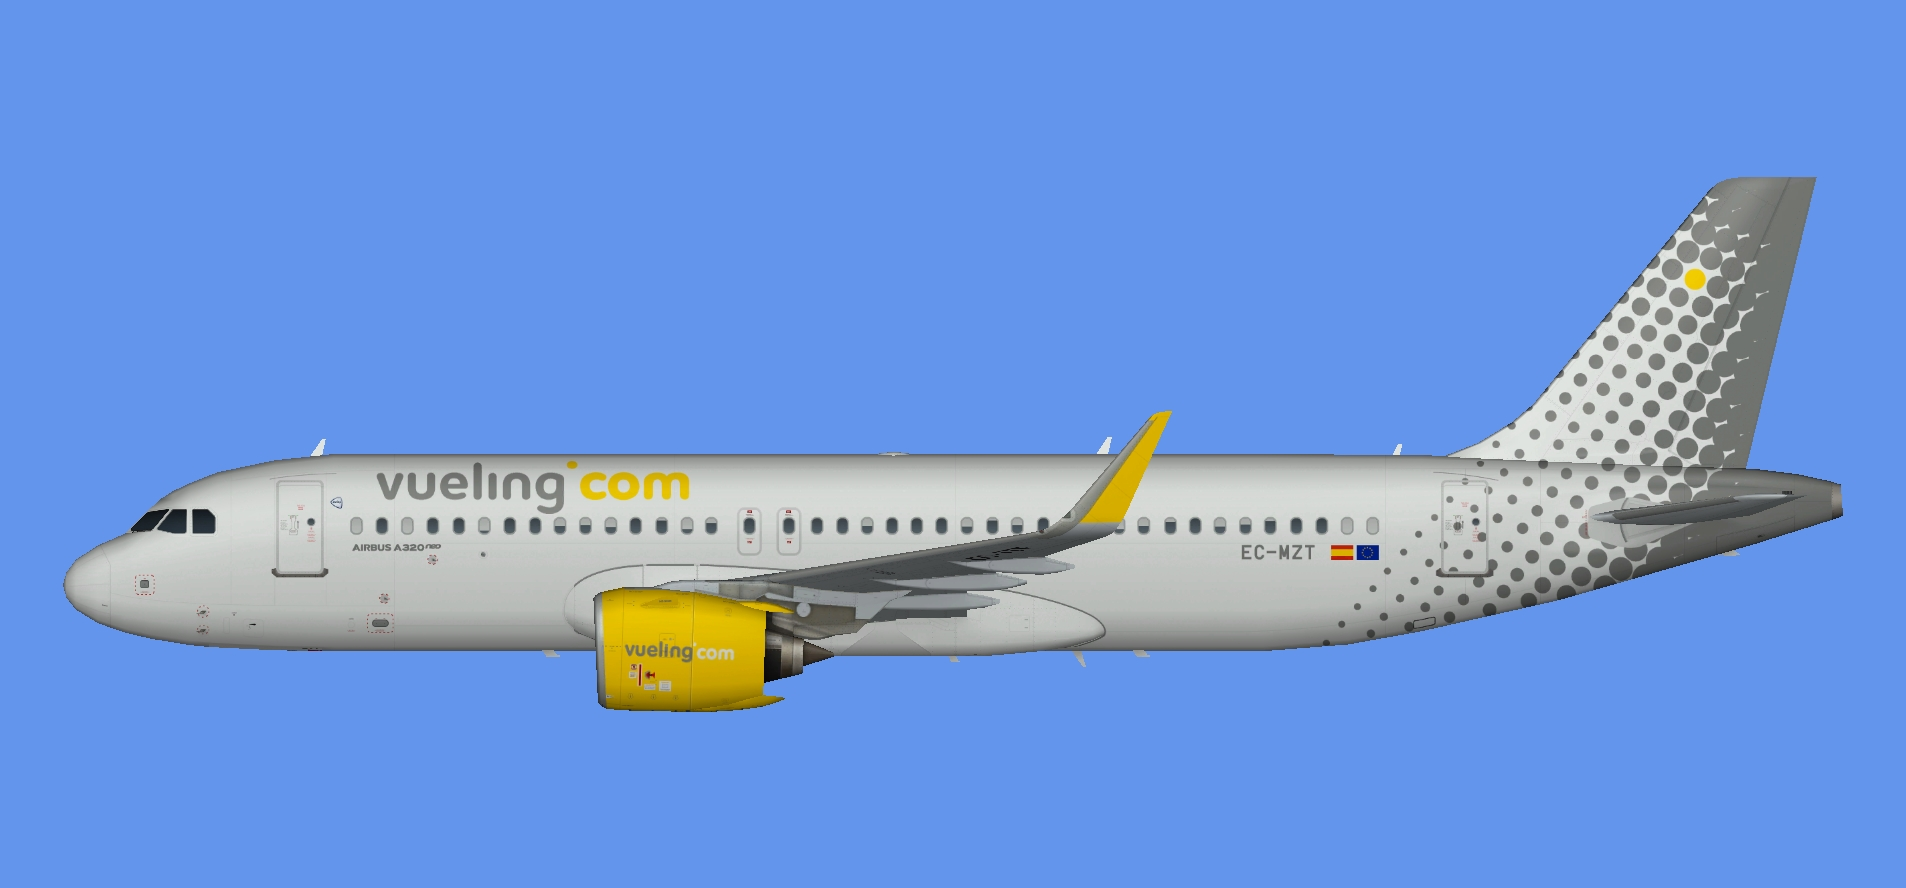 Vueling Airbus A320 NEO